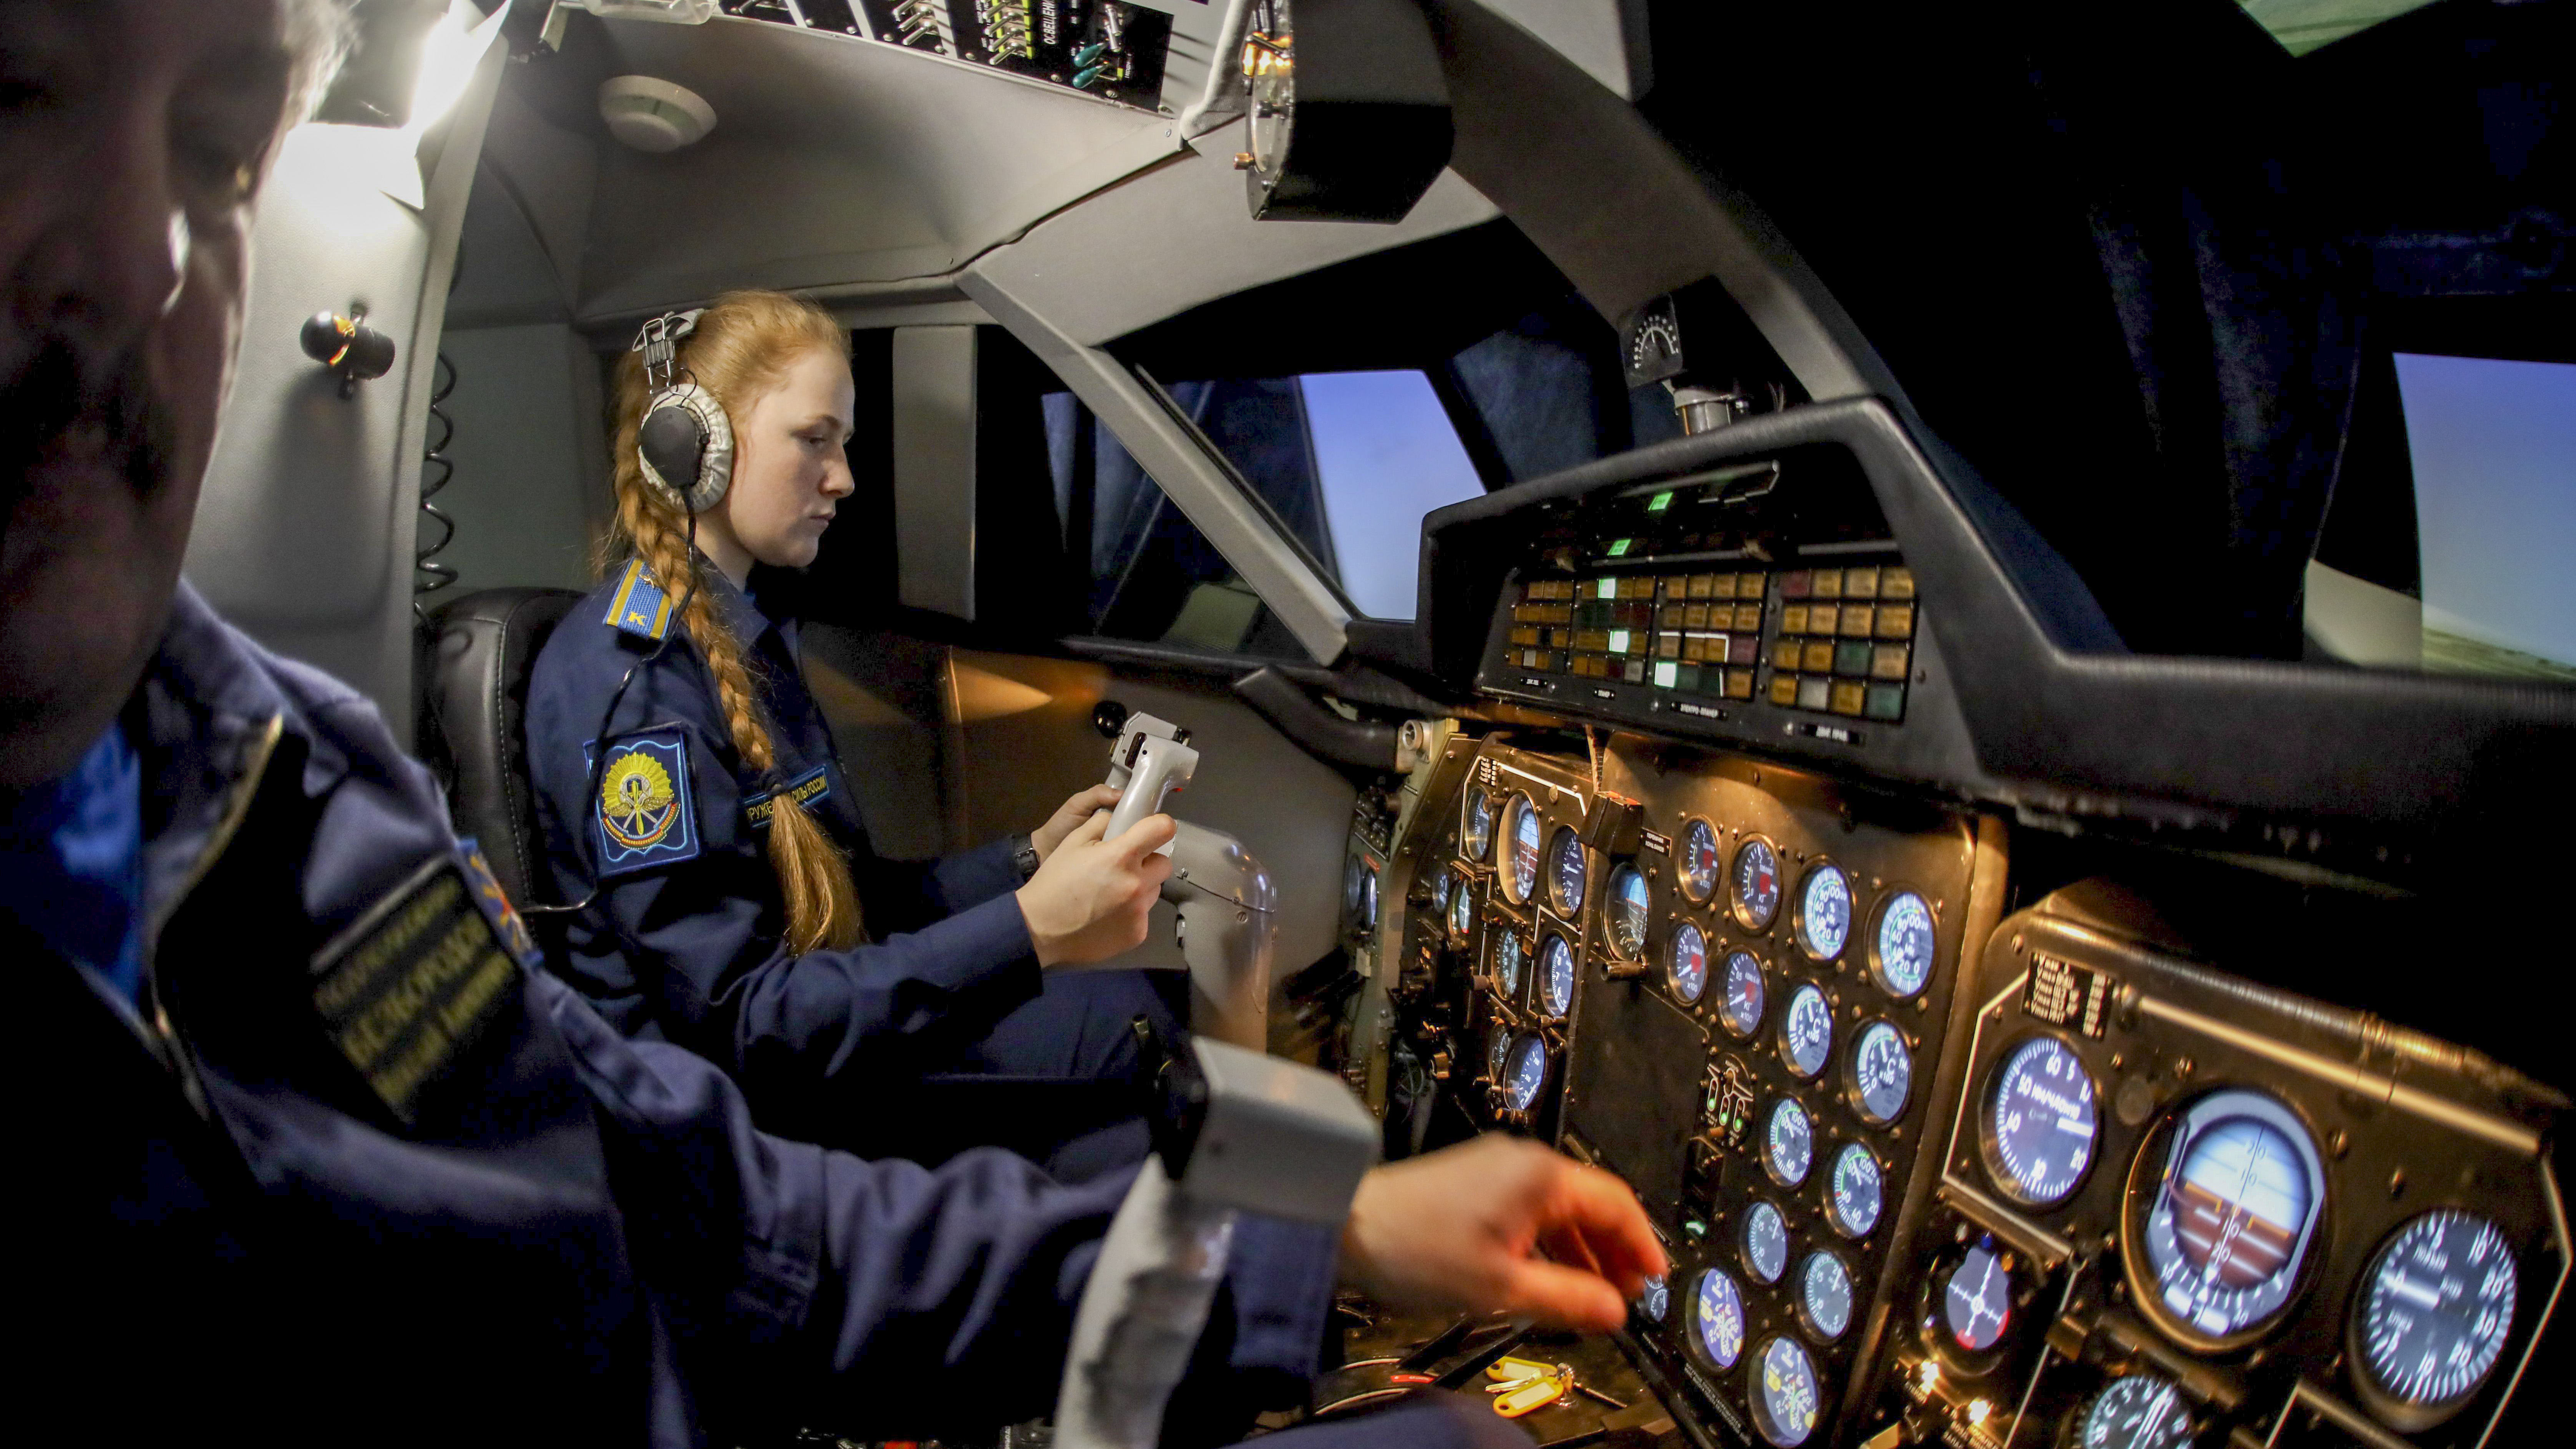 A female cadet sits in an aircraft cockpit simulator during a class at the Krasnodar Higher Military Aviation School in Krasnodar, Russia on March 1, 2019. (VITALY TIMKIV/AFP/Getty Images)